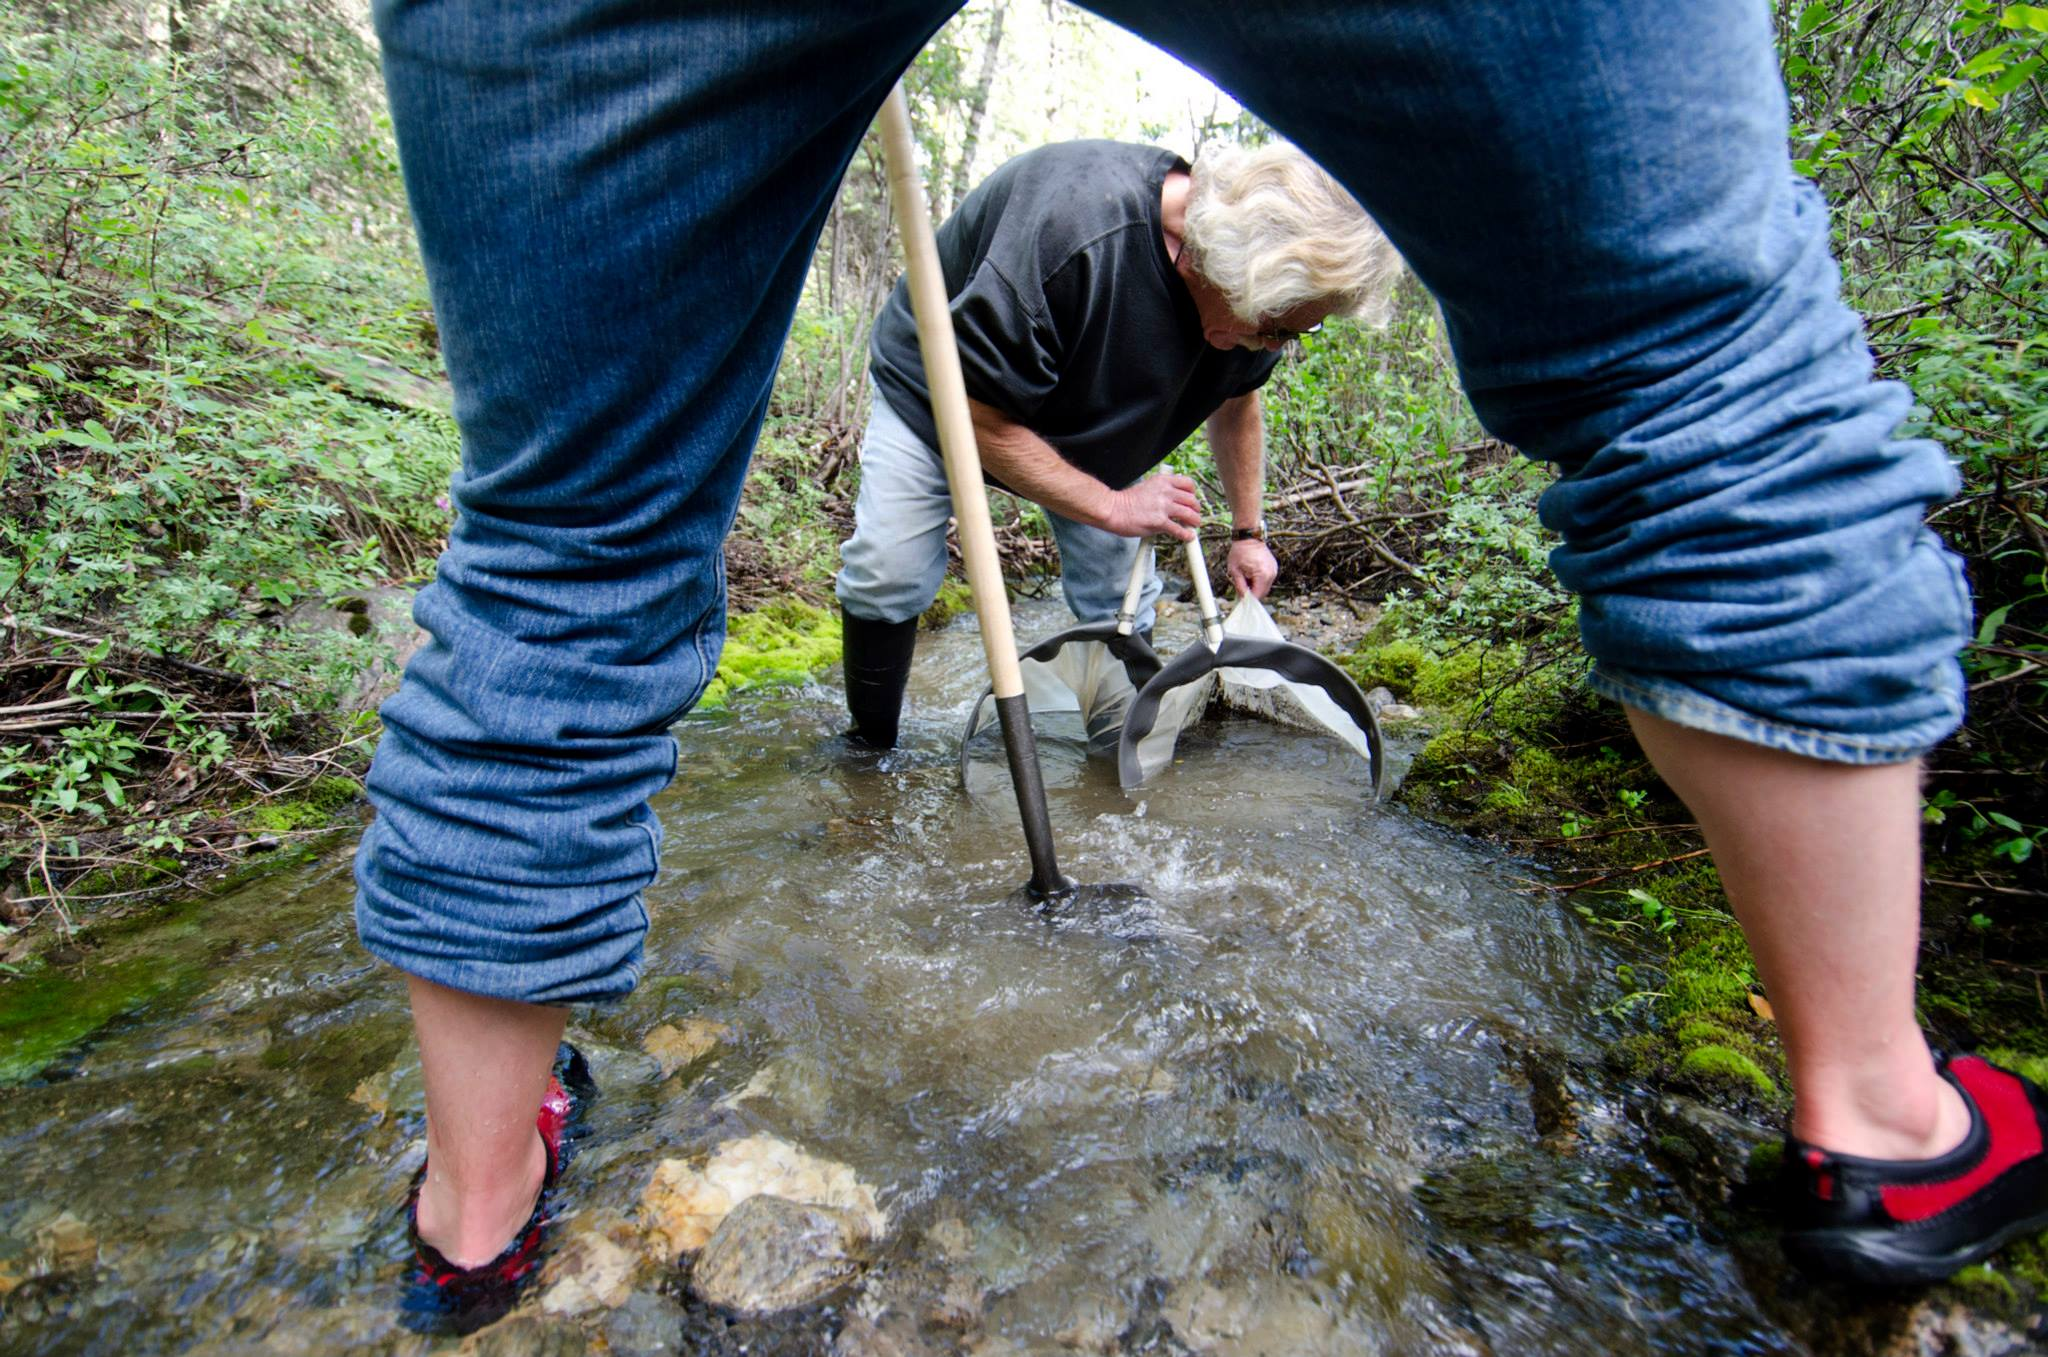 Researchers net aquatic macroinvertebrates in a stream